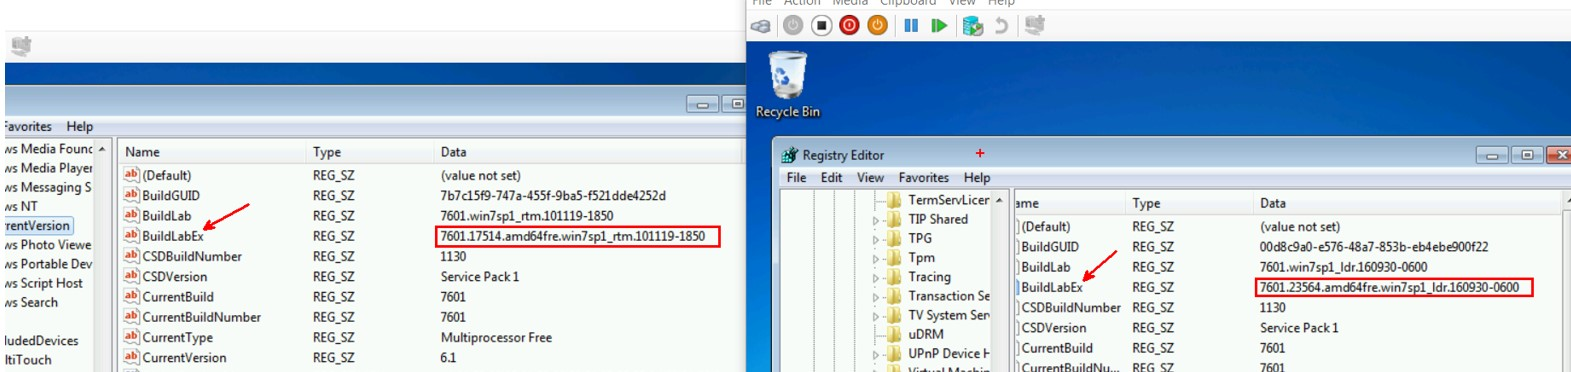 Windows 7: Creating Fully patched Image by Slipstream in the Convenience Rollup and Quality Rollup 15